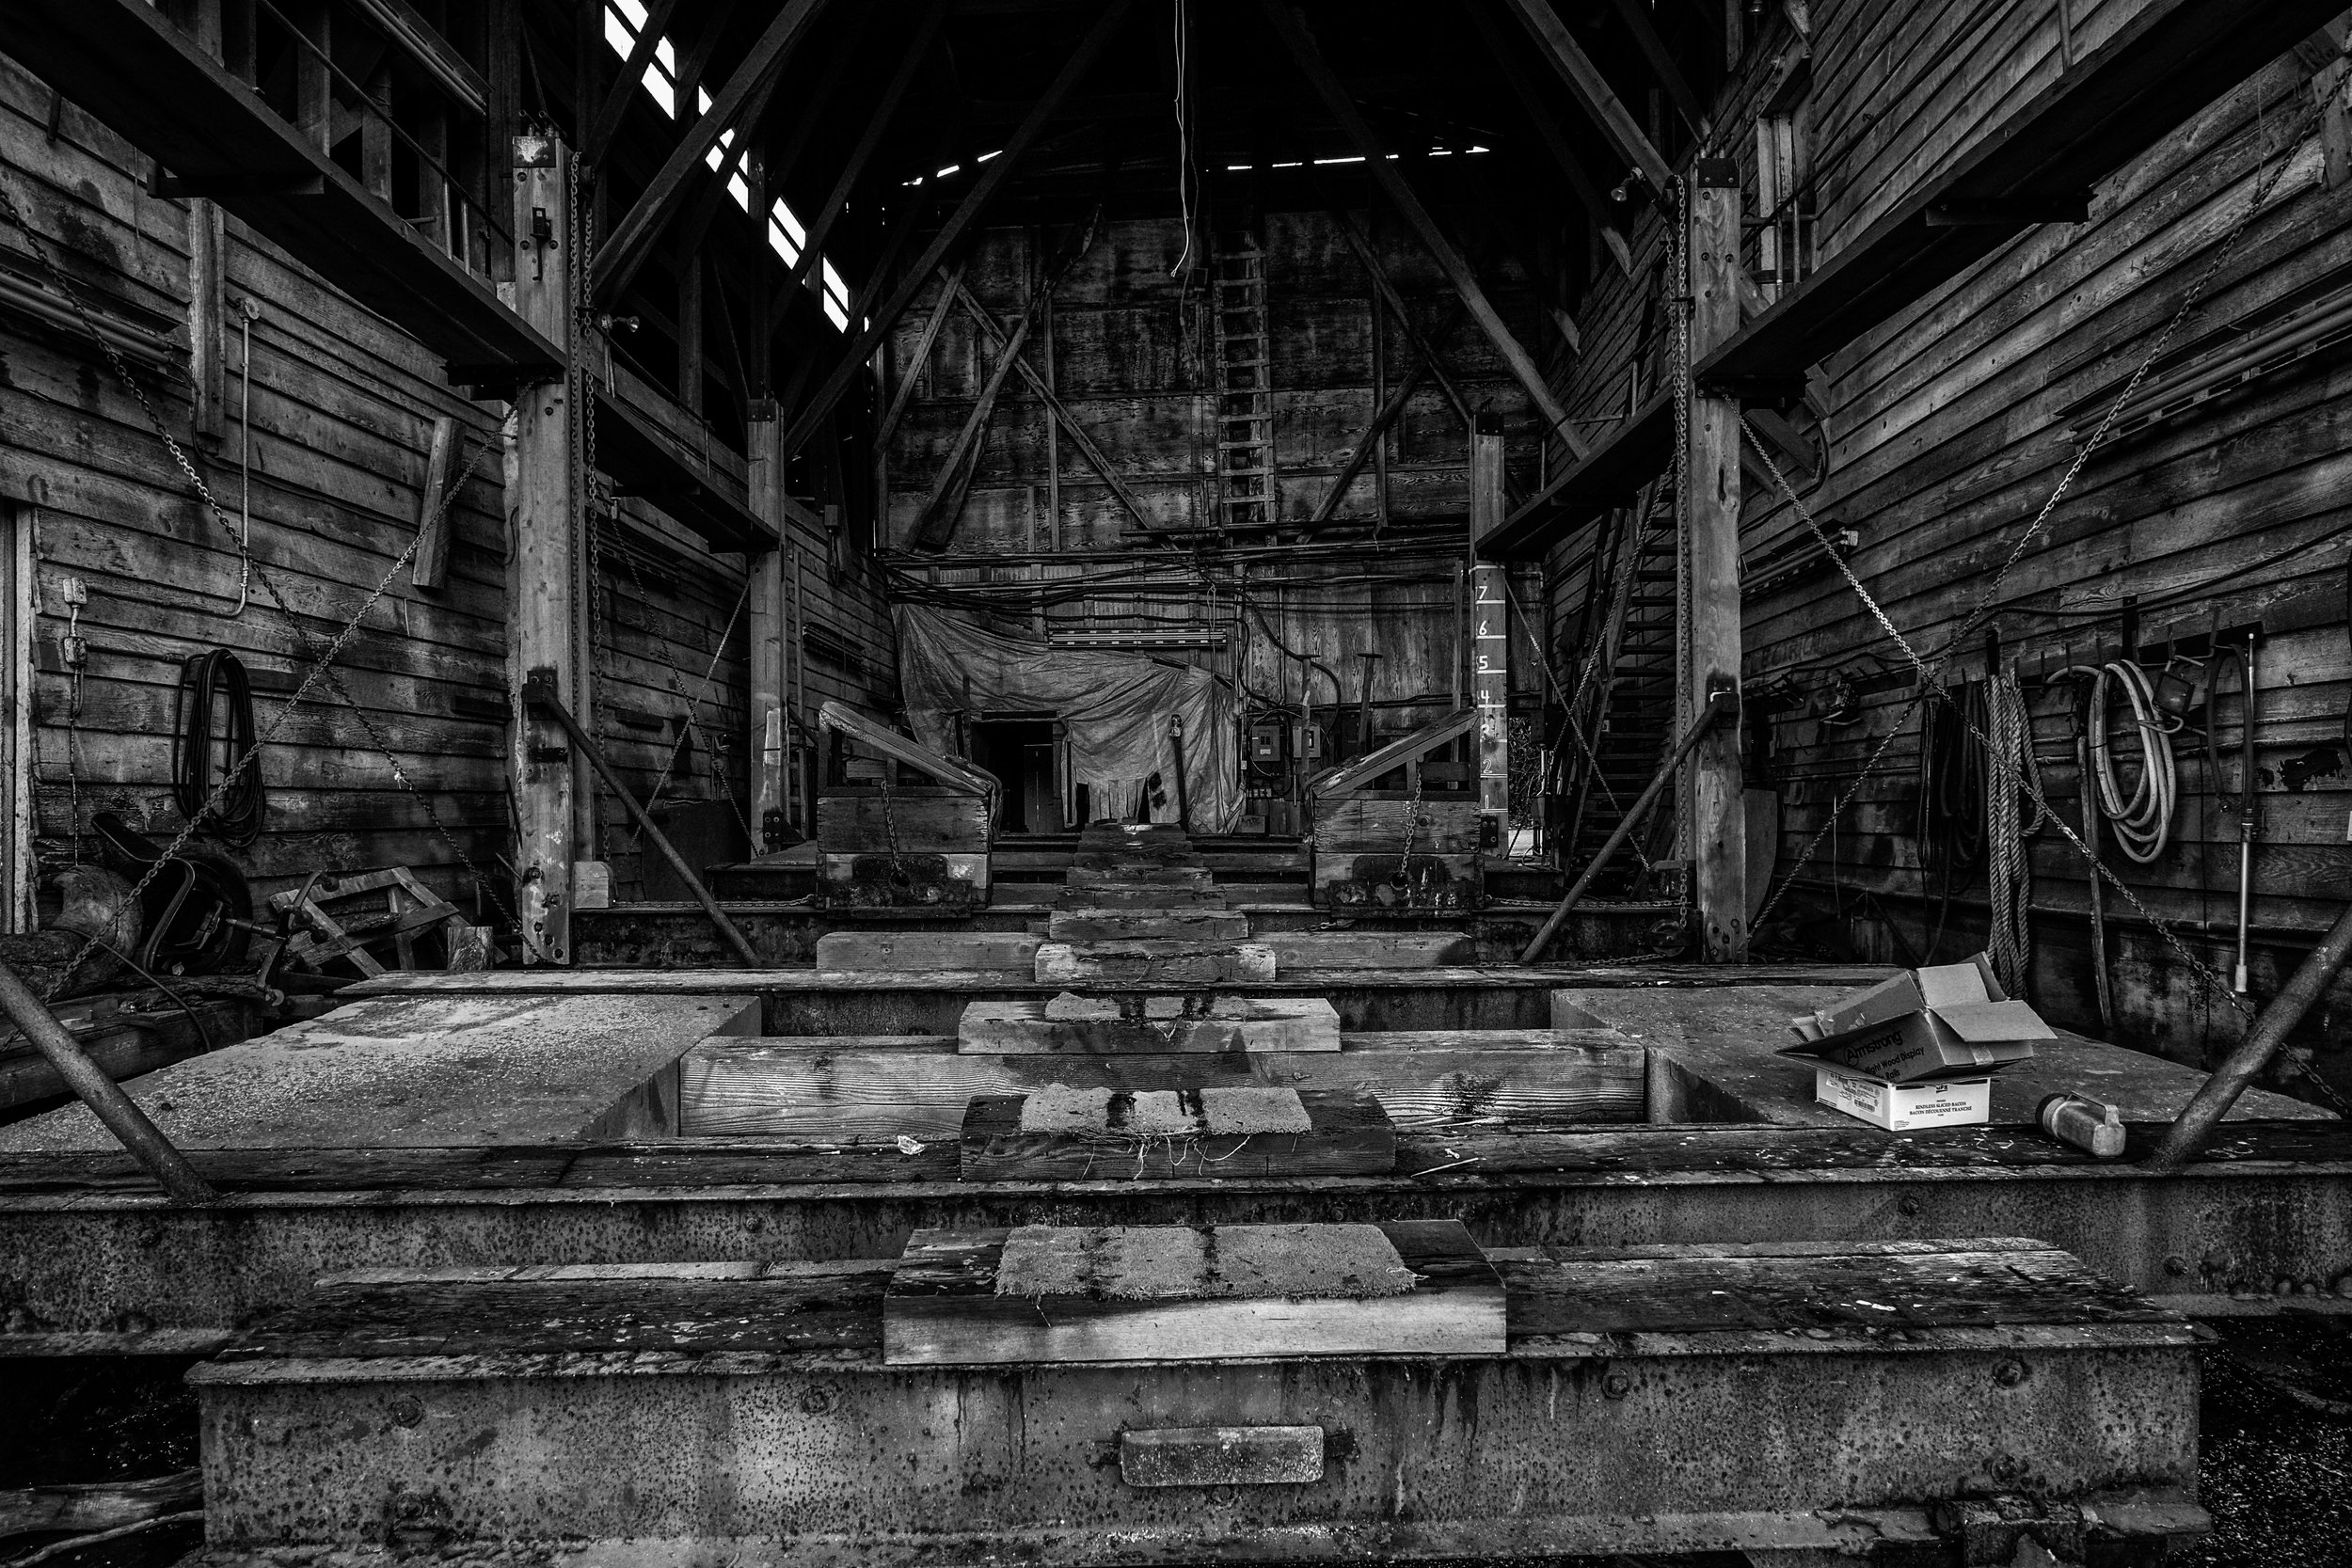 The shadowy interior of a dry dock invites further exploration.  Fuji X10 DF14mm f/2.8 at f/8 1/30 ISO 2500